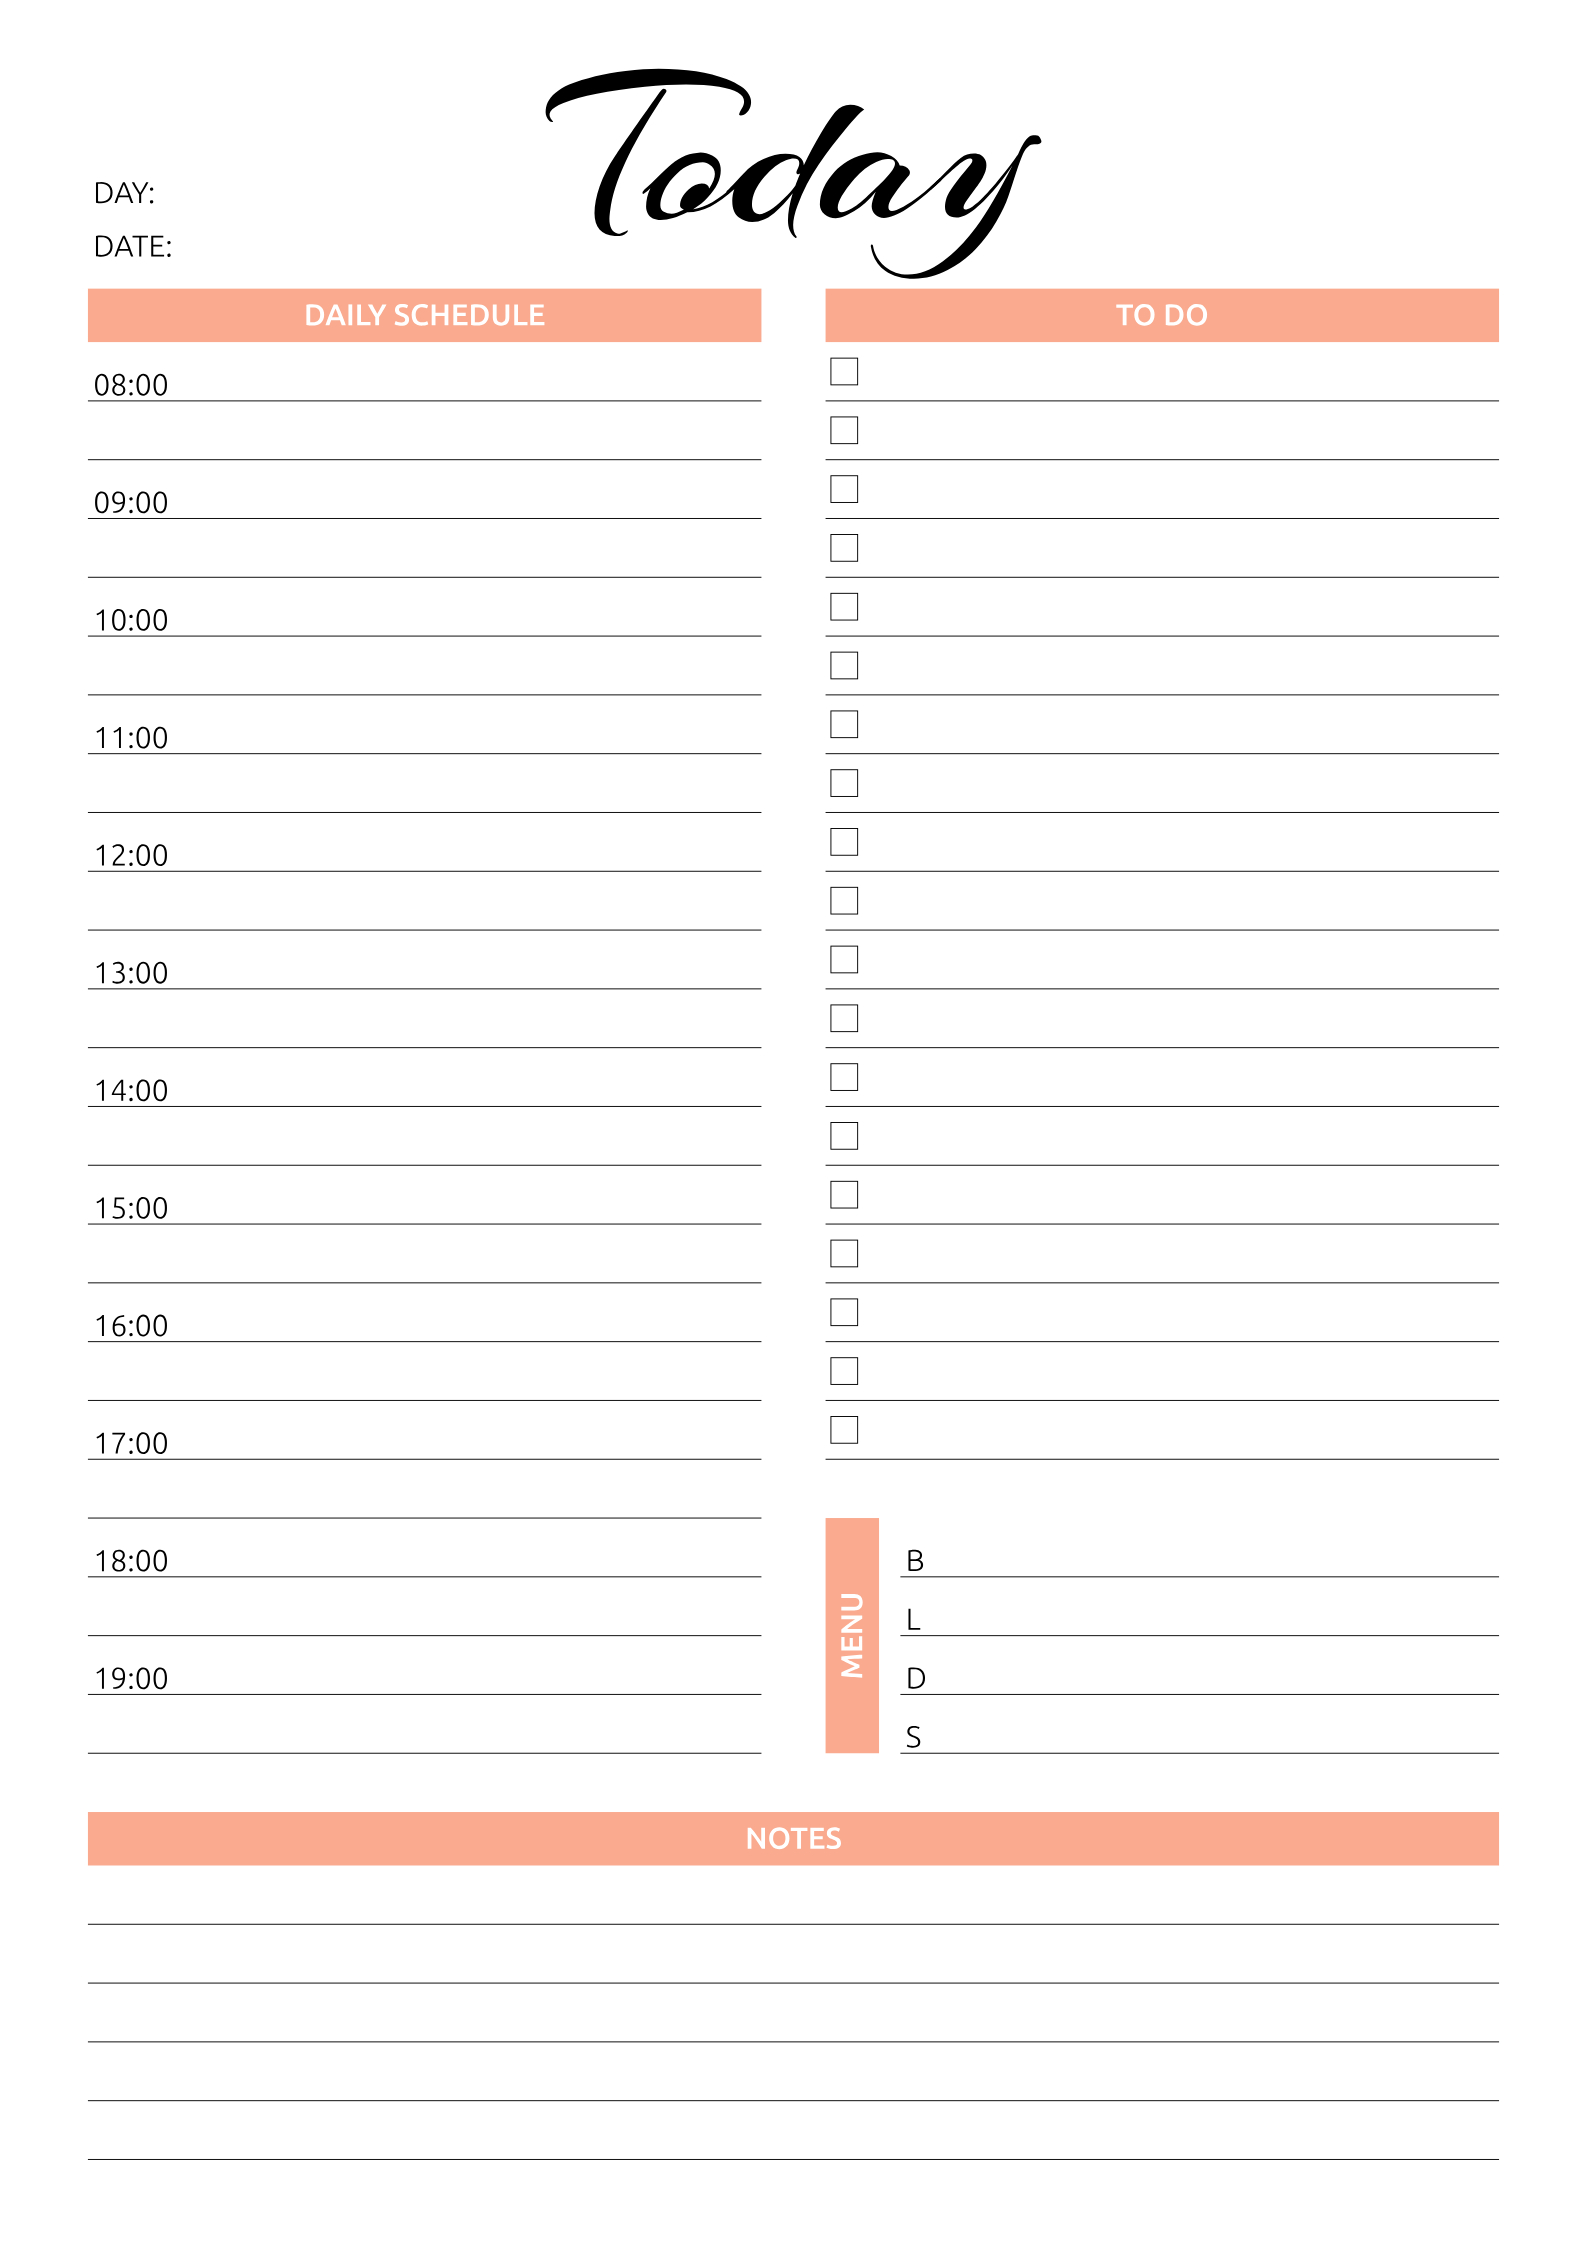 Today Hourly Planner   Daily Planner Template, Hourly Printable Daily Schedule By Hour